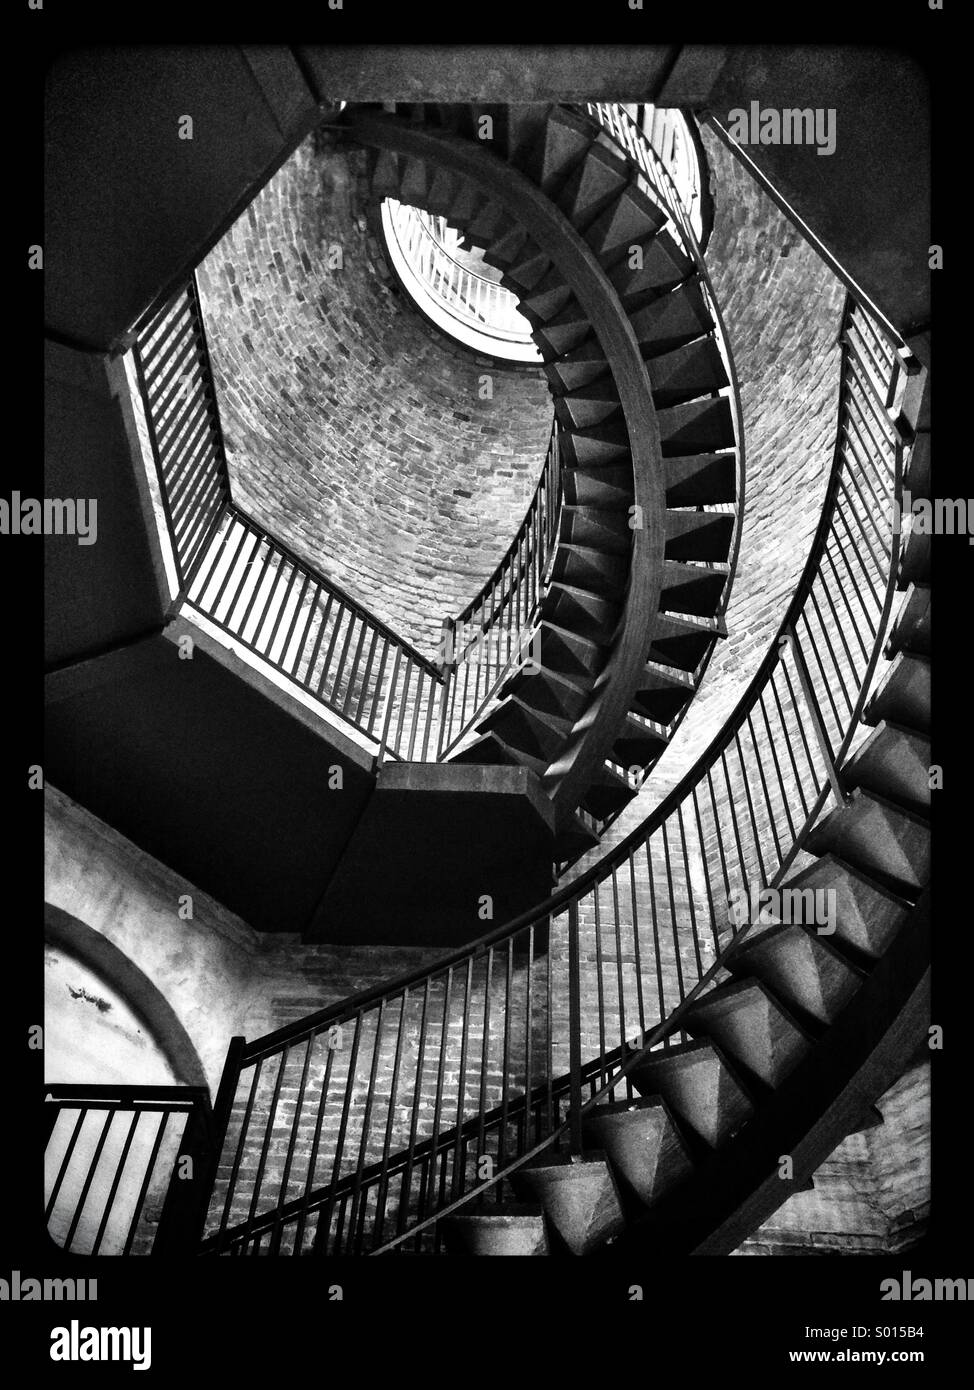 Stairs - Stock Image